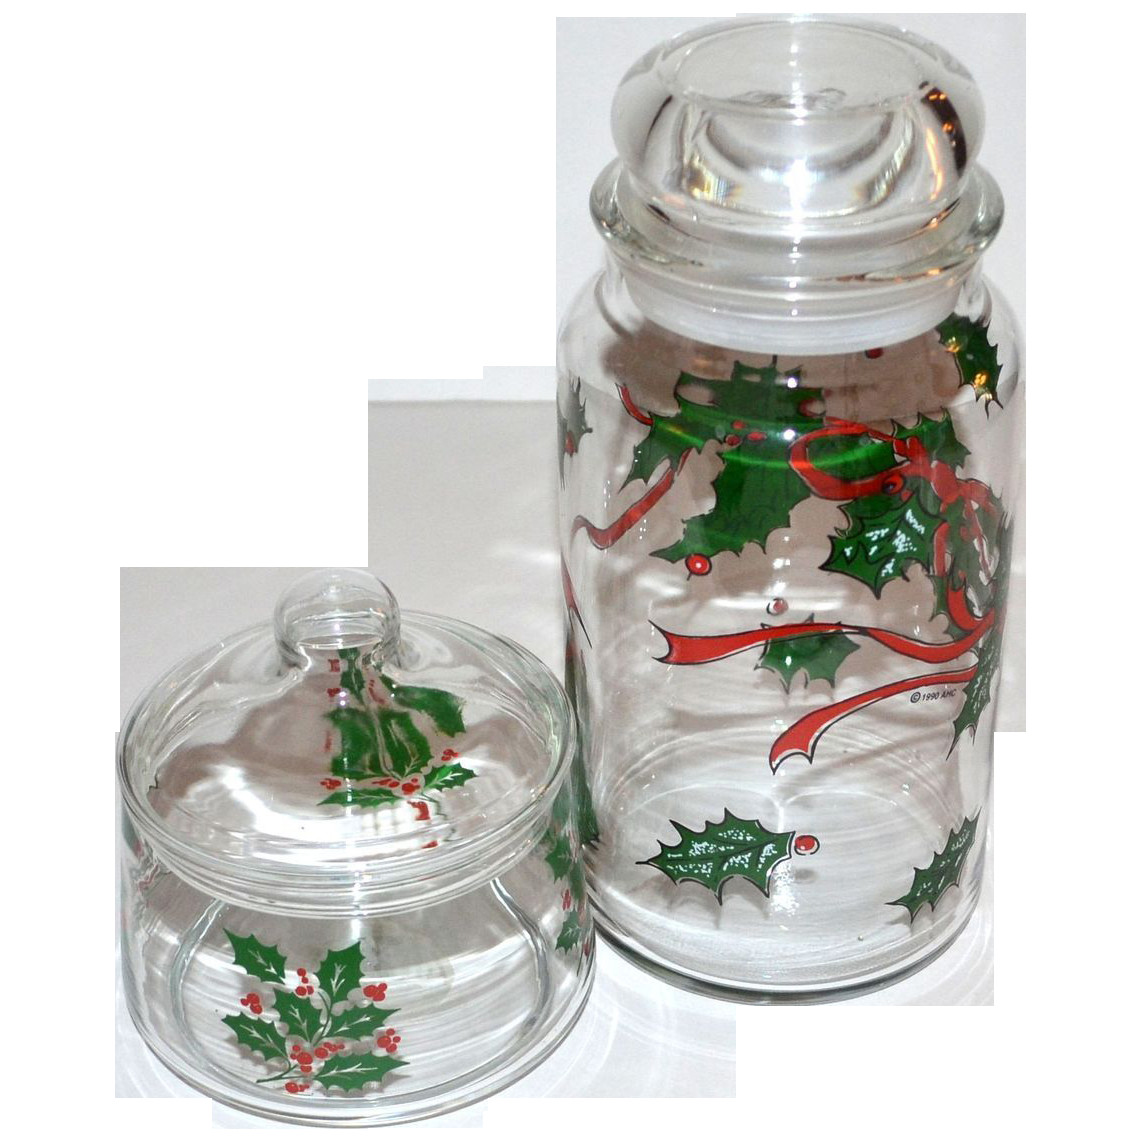 Christmas Glass Candy  Set of 2 Christmas Holly Glass Candy Jars from